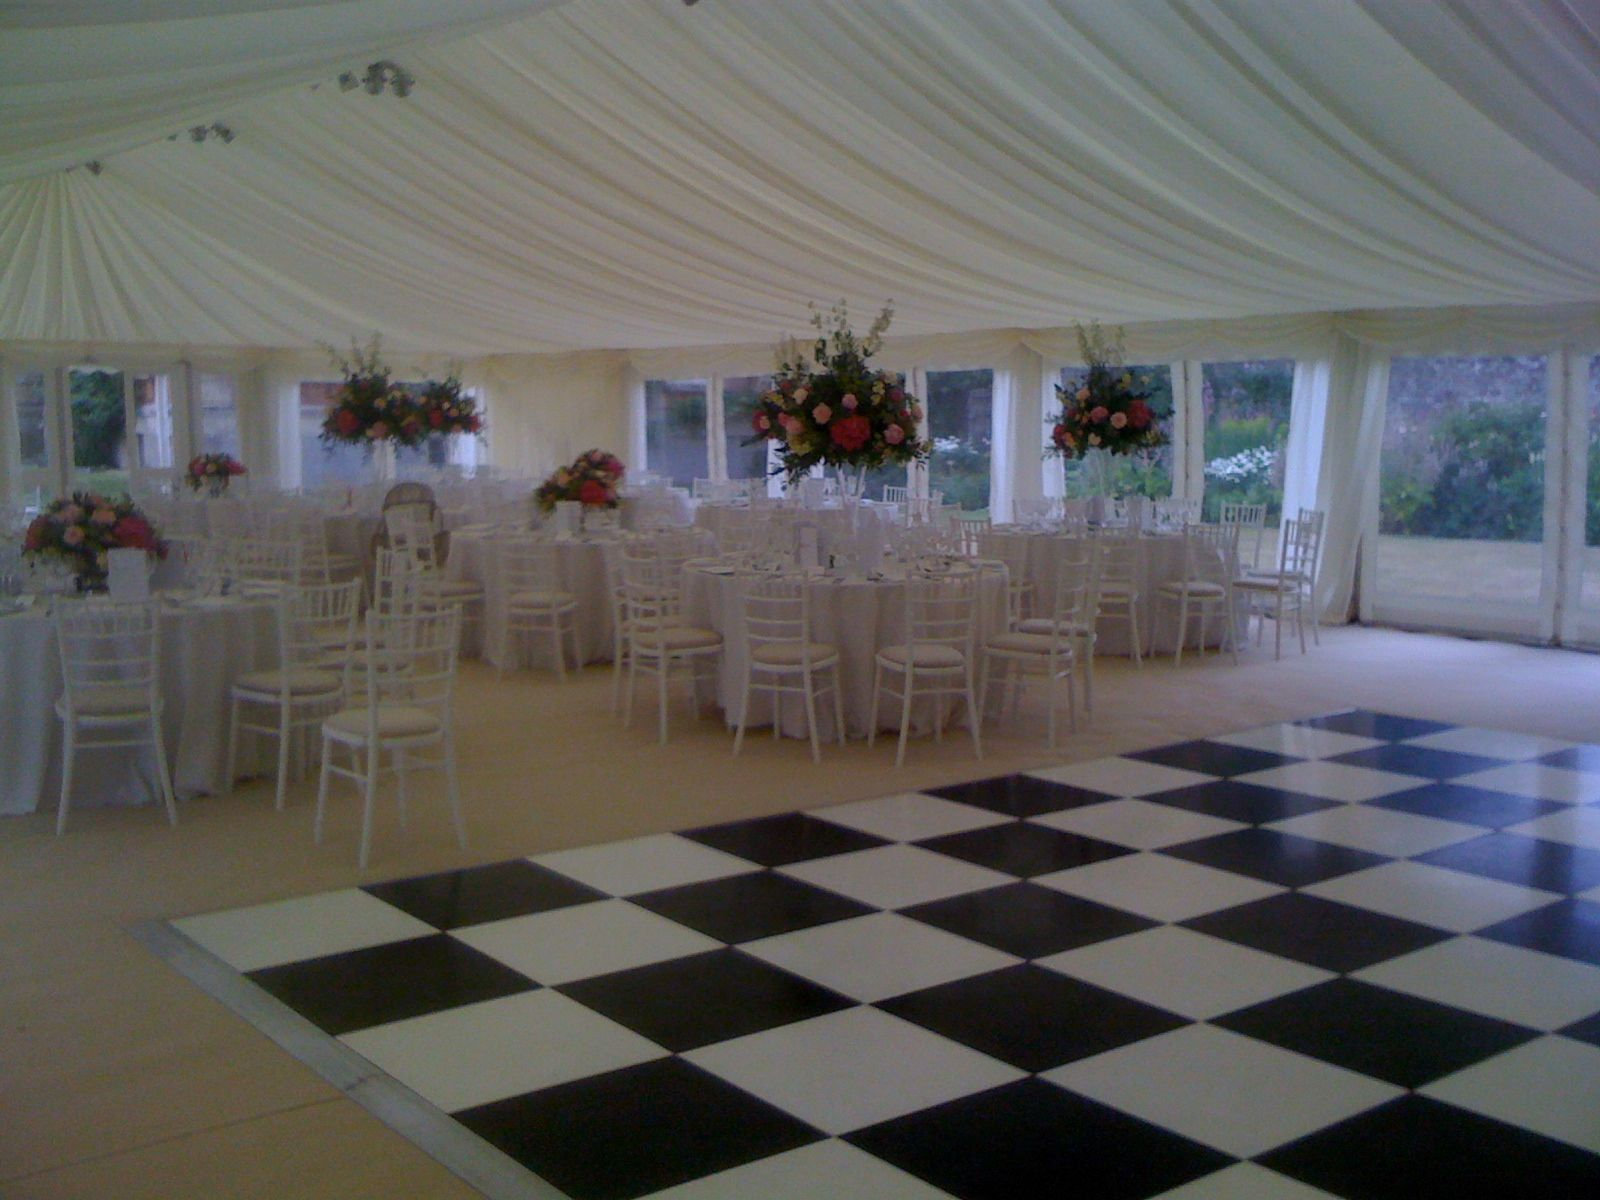 Add a bit of fun with a checkered dance floor!